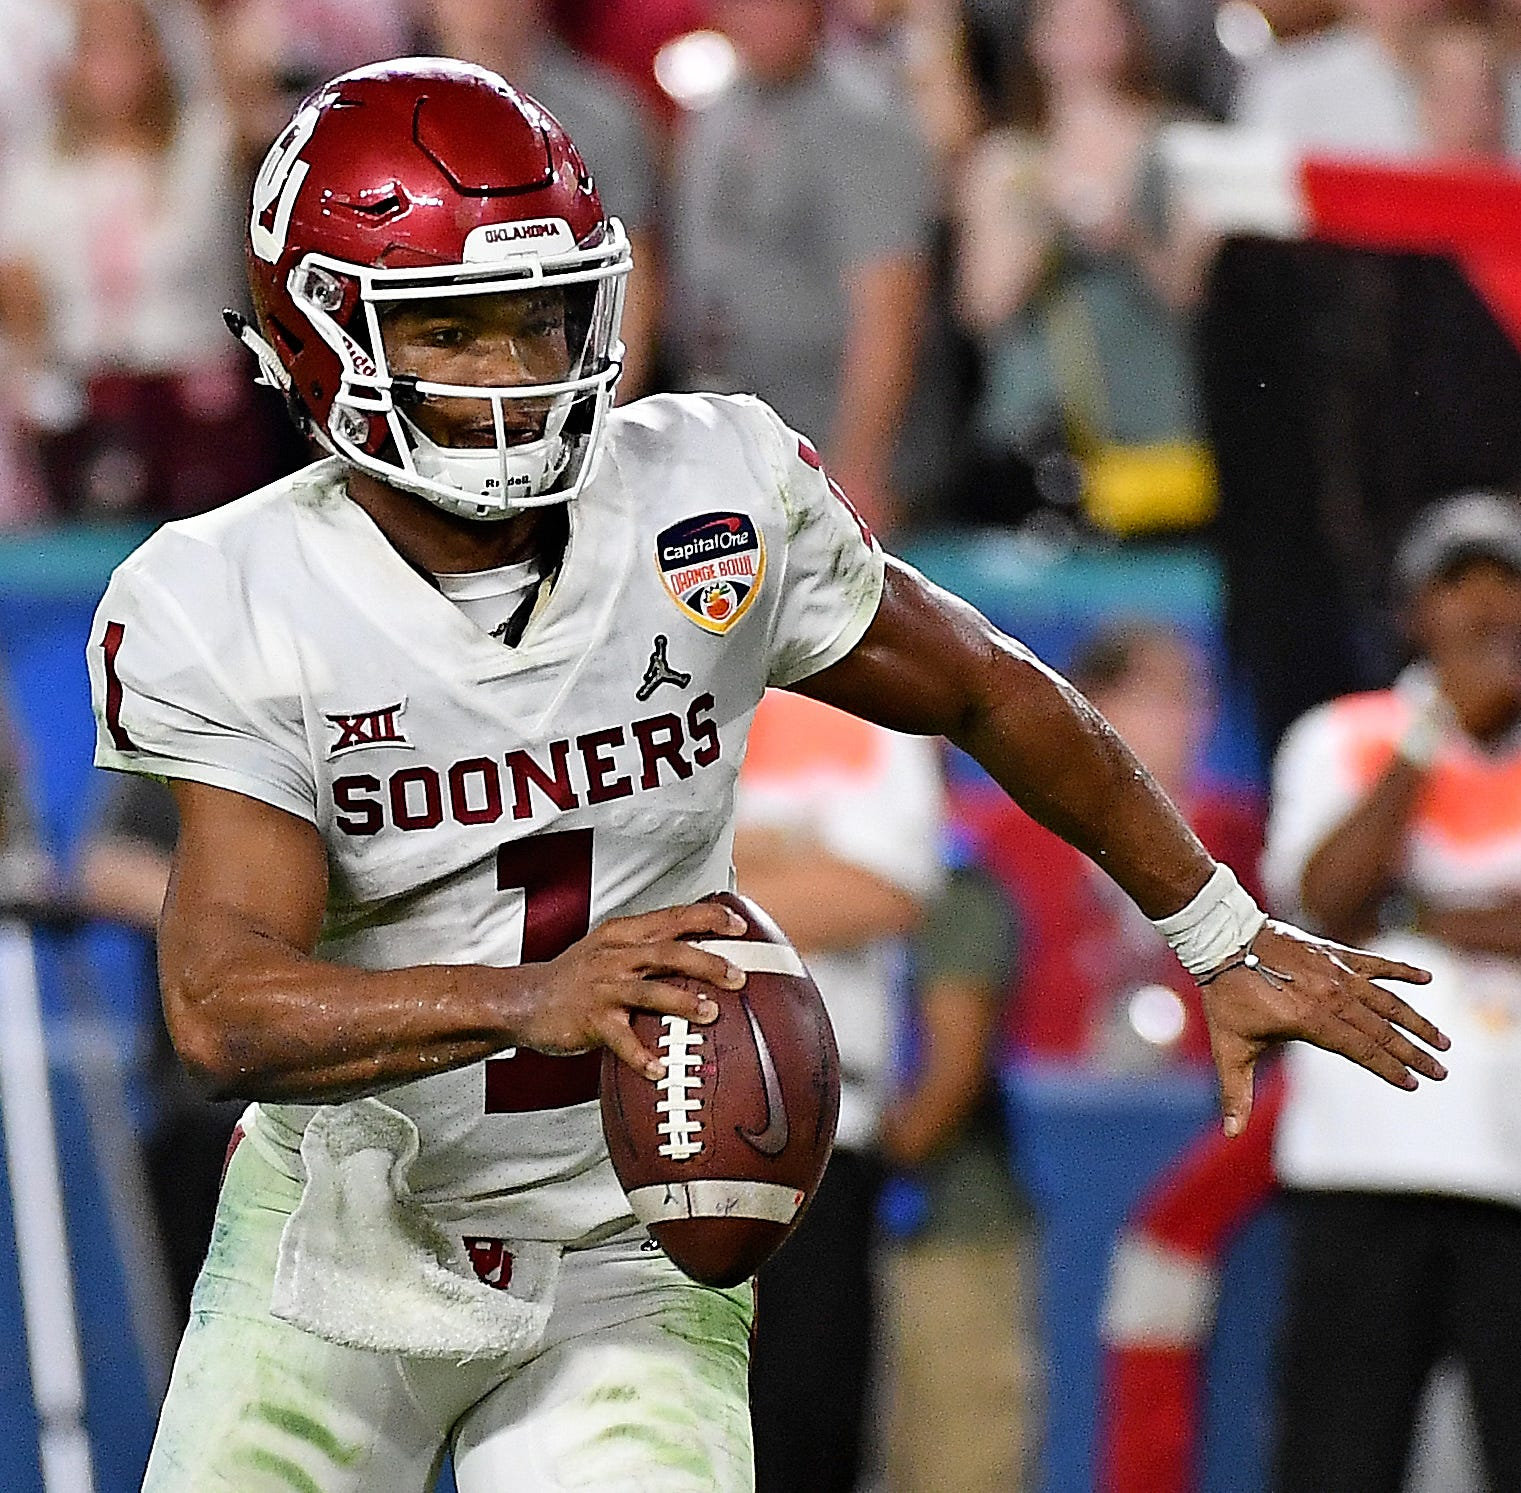 NFL mock draft: Why Arizona Cardinals should take Kyler Murray with No. 1 NFL draft pick